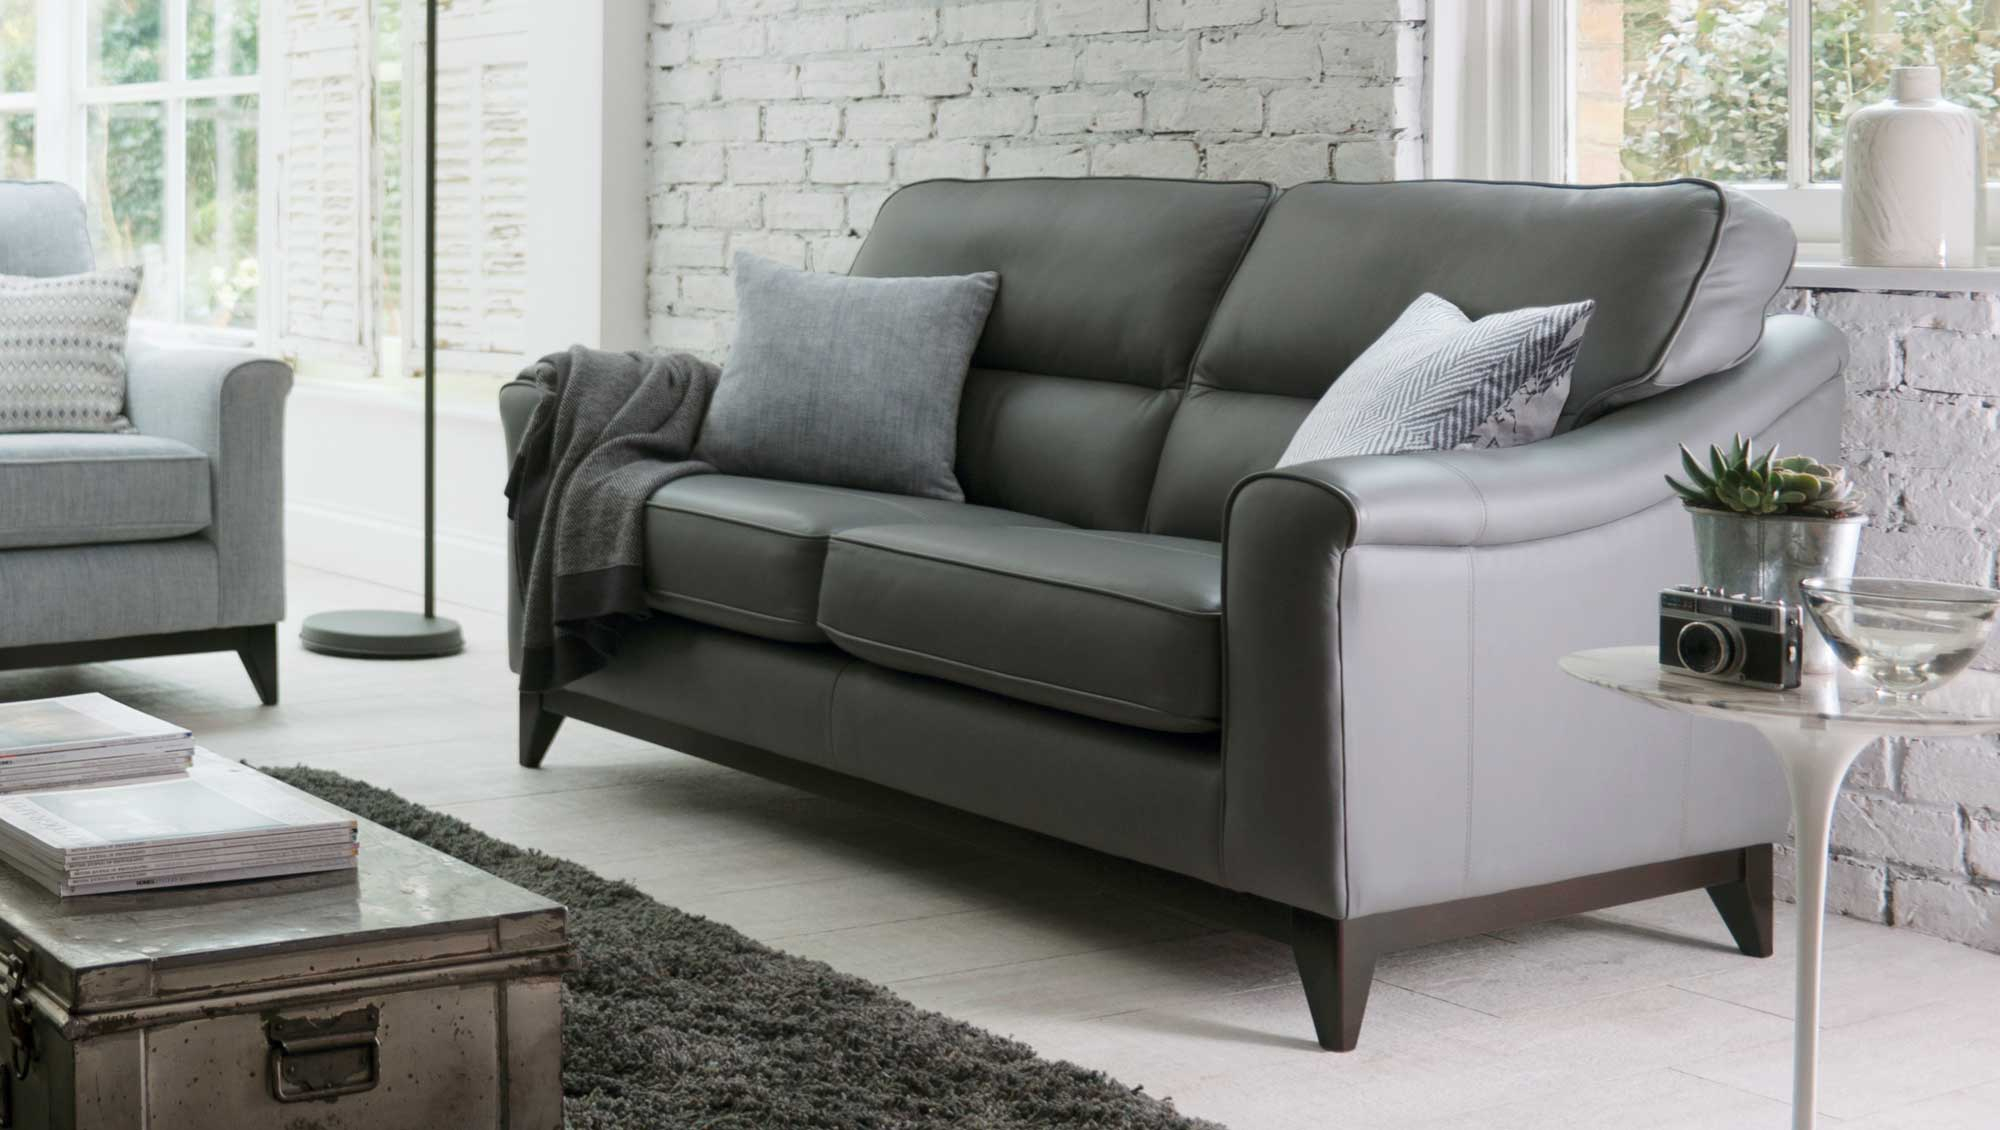 Parker Knoll Montana – Leather Ranges – Sofas & Chairs | Tr Hayes Within Parker Sofa Chairs (Photo 5 of 20)